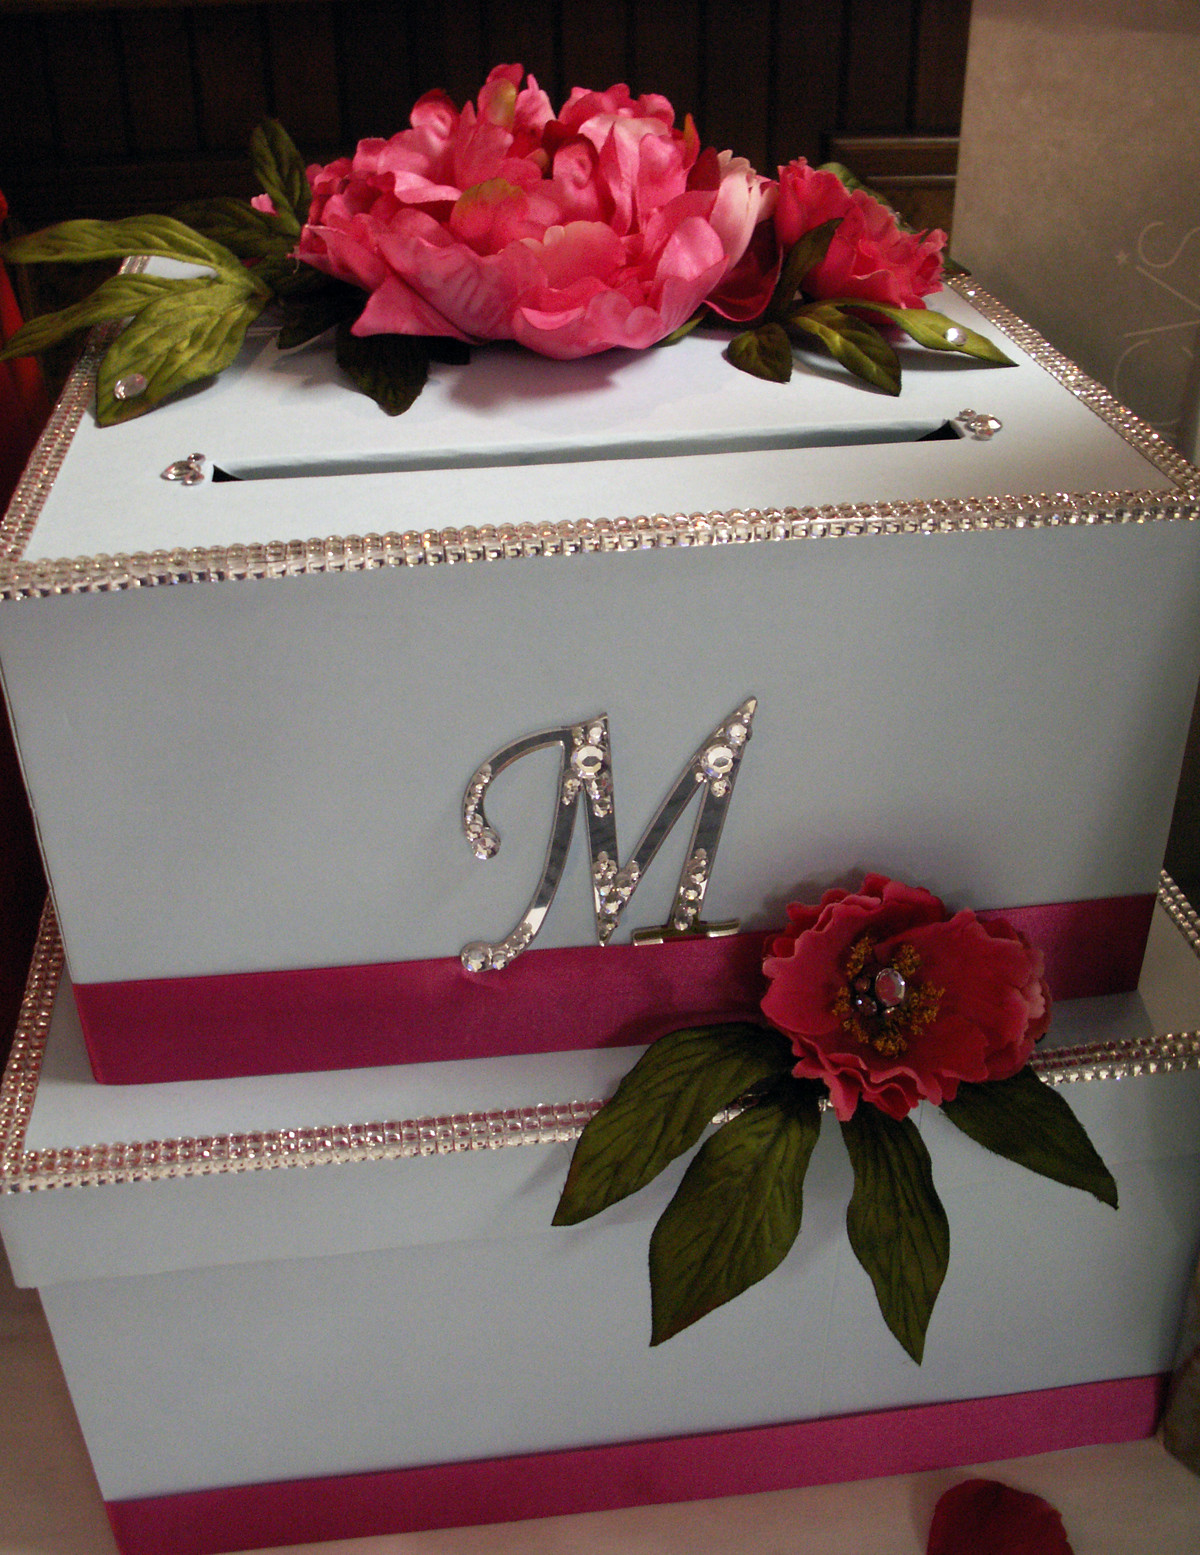 Best ideas about Wedding Card Boxes DIY . Save or Pin DIY Wedding Card Box Project Now.